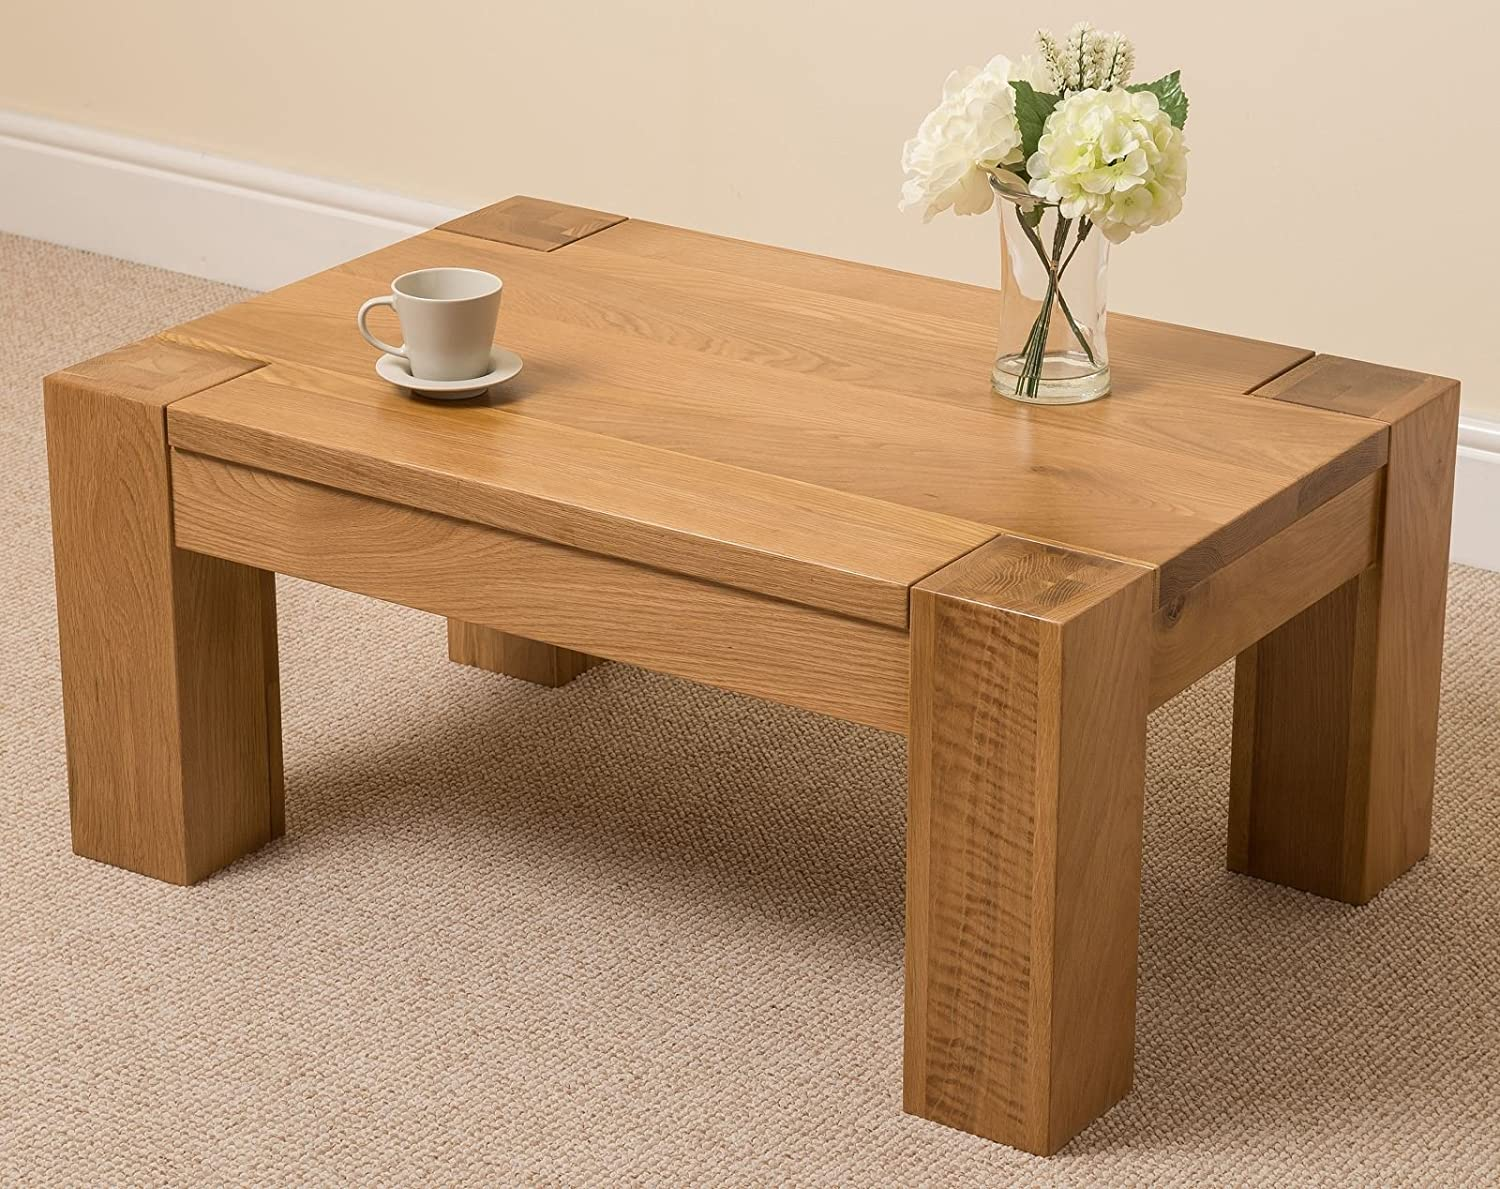 oak end tables. Kuba Chunky Solid Oak Wood Large Coffee Table Unit Wooden Living Room, 90 X 40 60cm: Amazon.co.uk: Kitchen \u0026 Home End Tables B